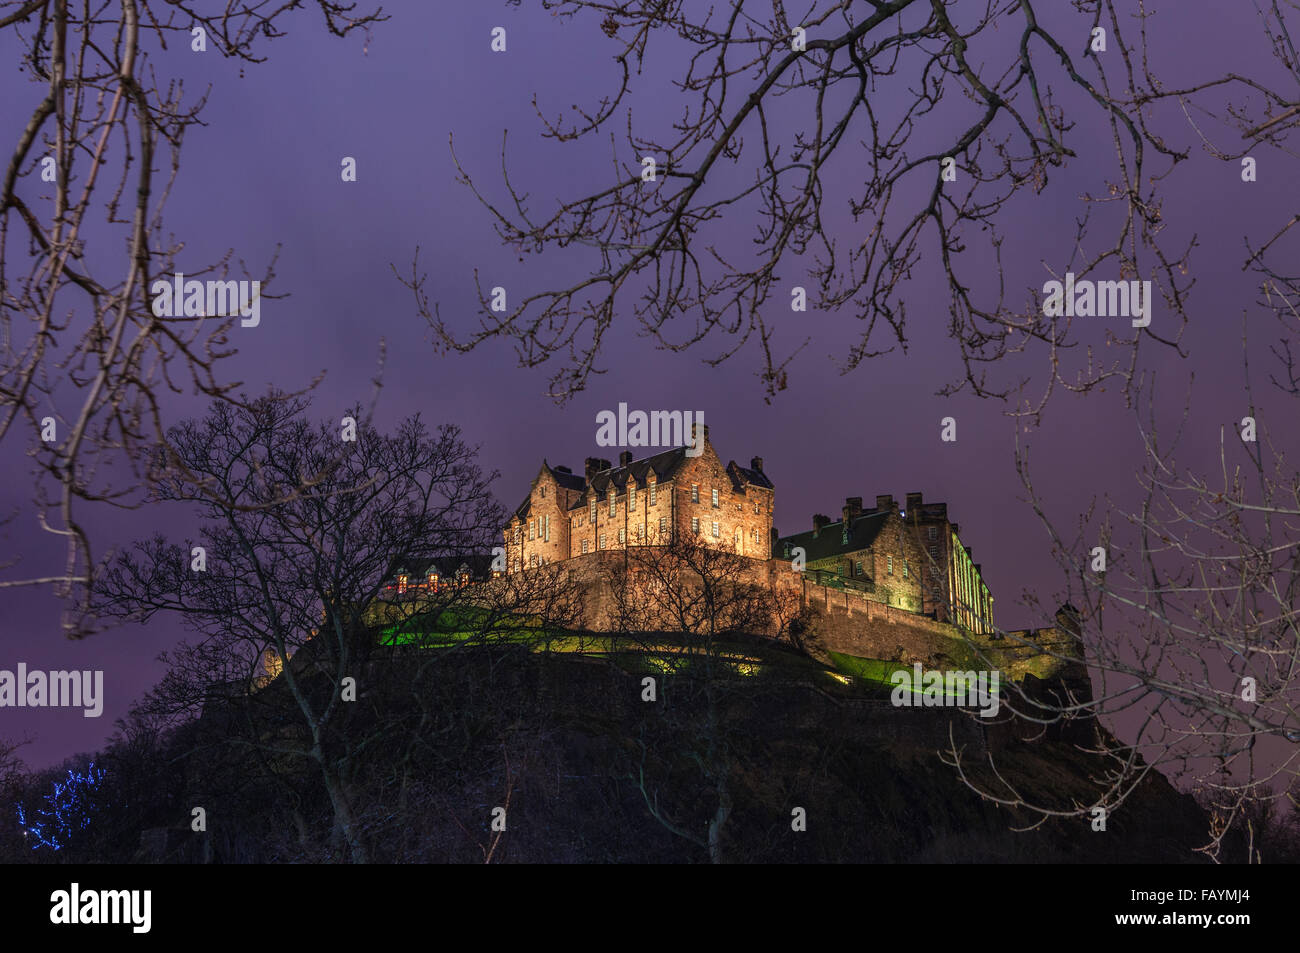 A view of the impressive Edinburgh Castle in Scotland. - Stock Image